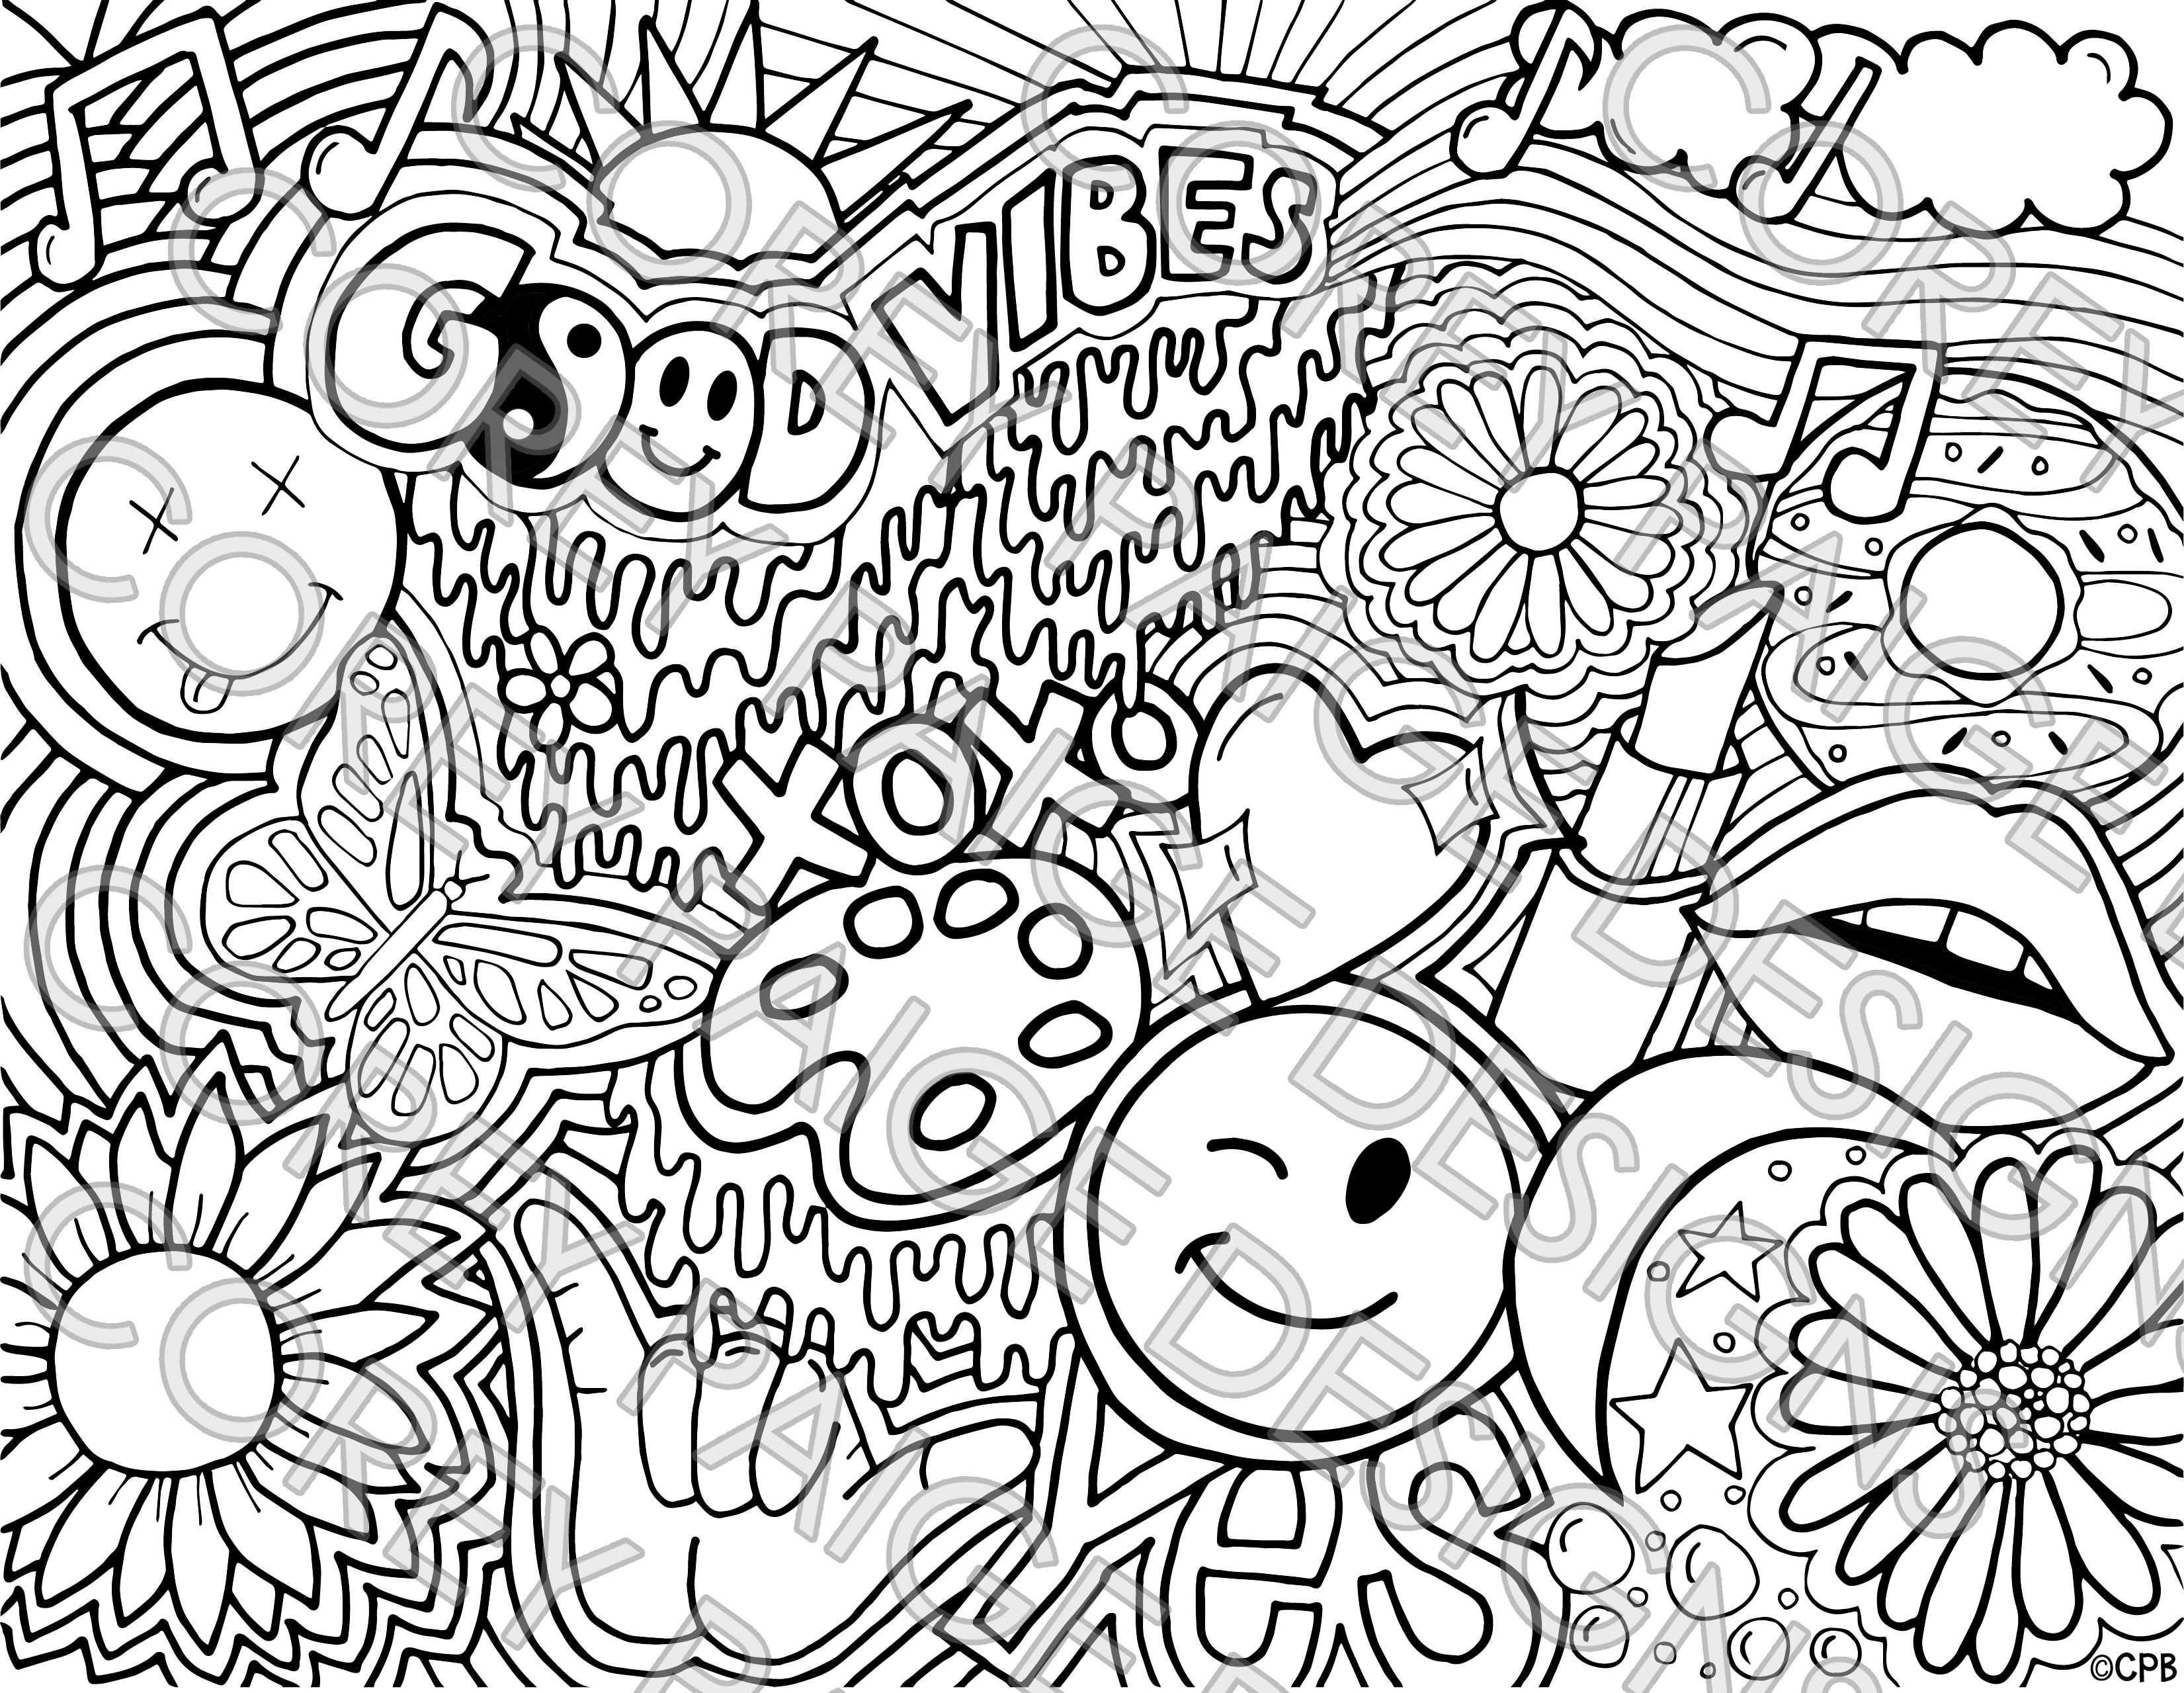 Good Vibes Coloring Sheet Pack Cool Coloring Pages Love Coloring Pages Tumblr Coloring Pages [ 2559 x 3302 Pixel ]